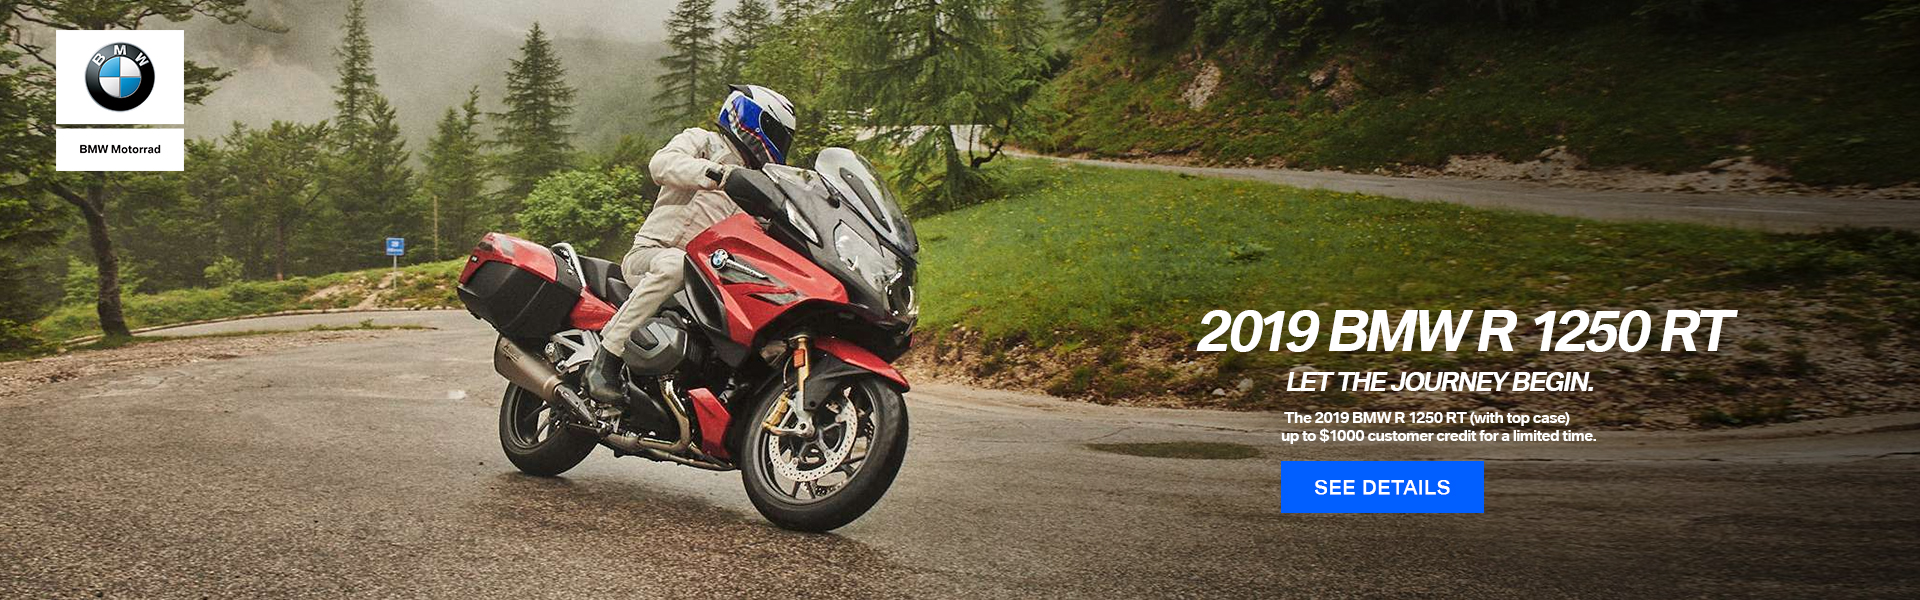 2019 BMW R 1250 R With Top Case Up to $1000 customer credit for a lmited time